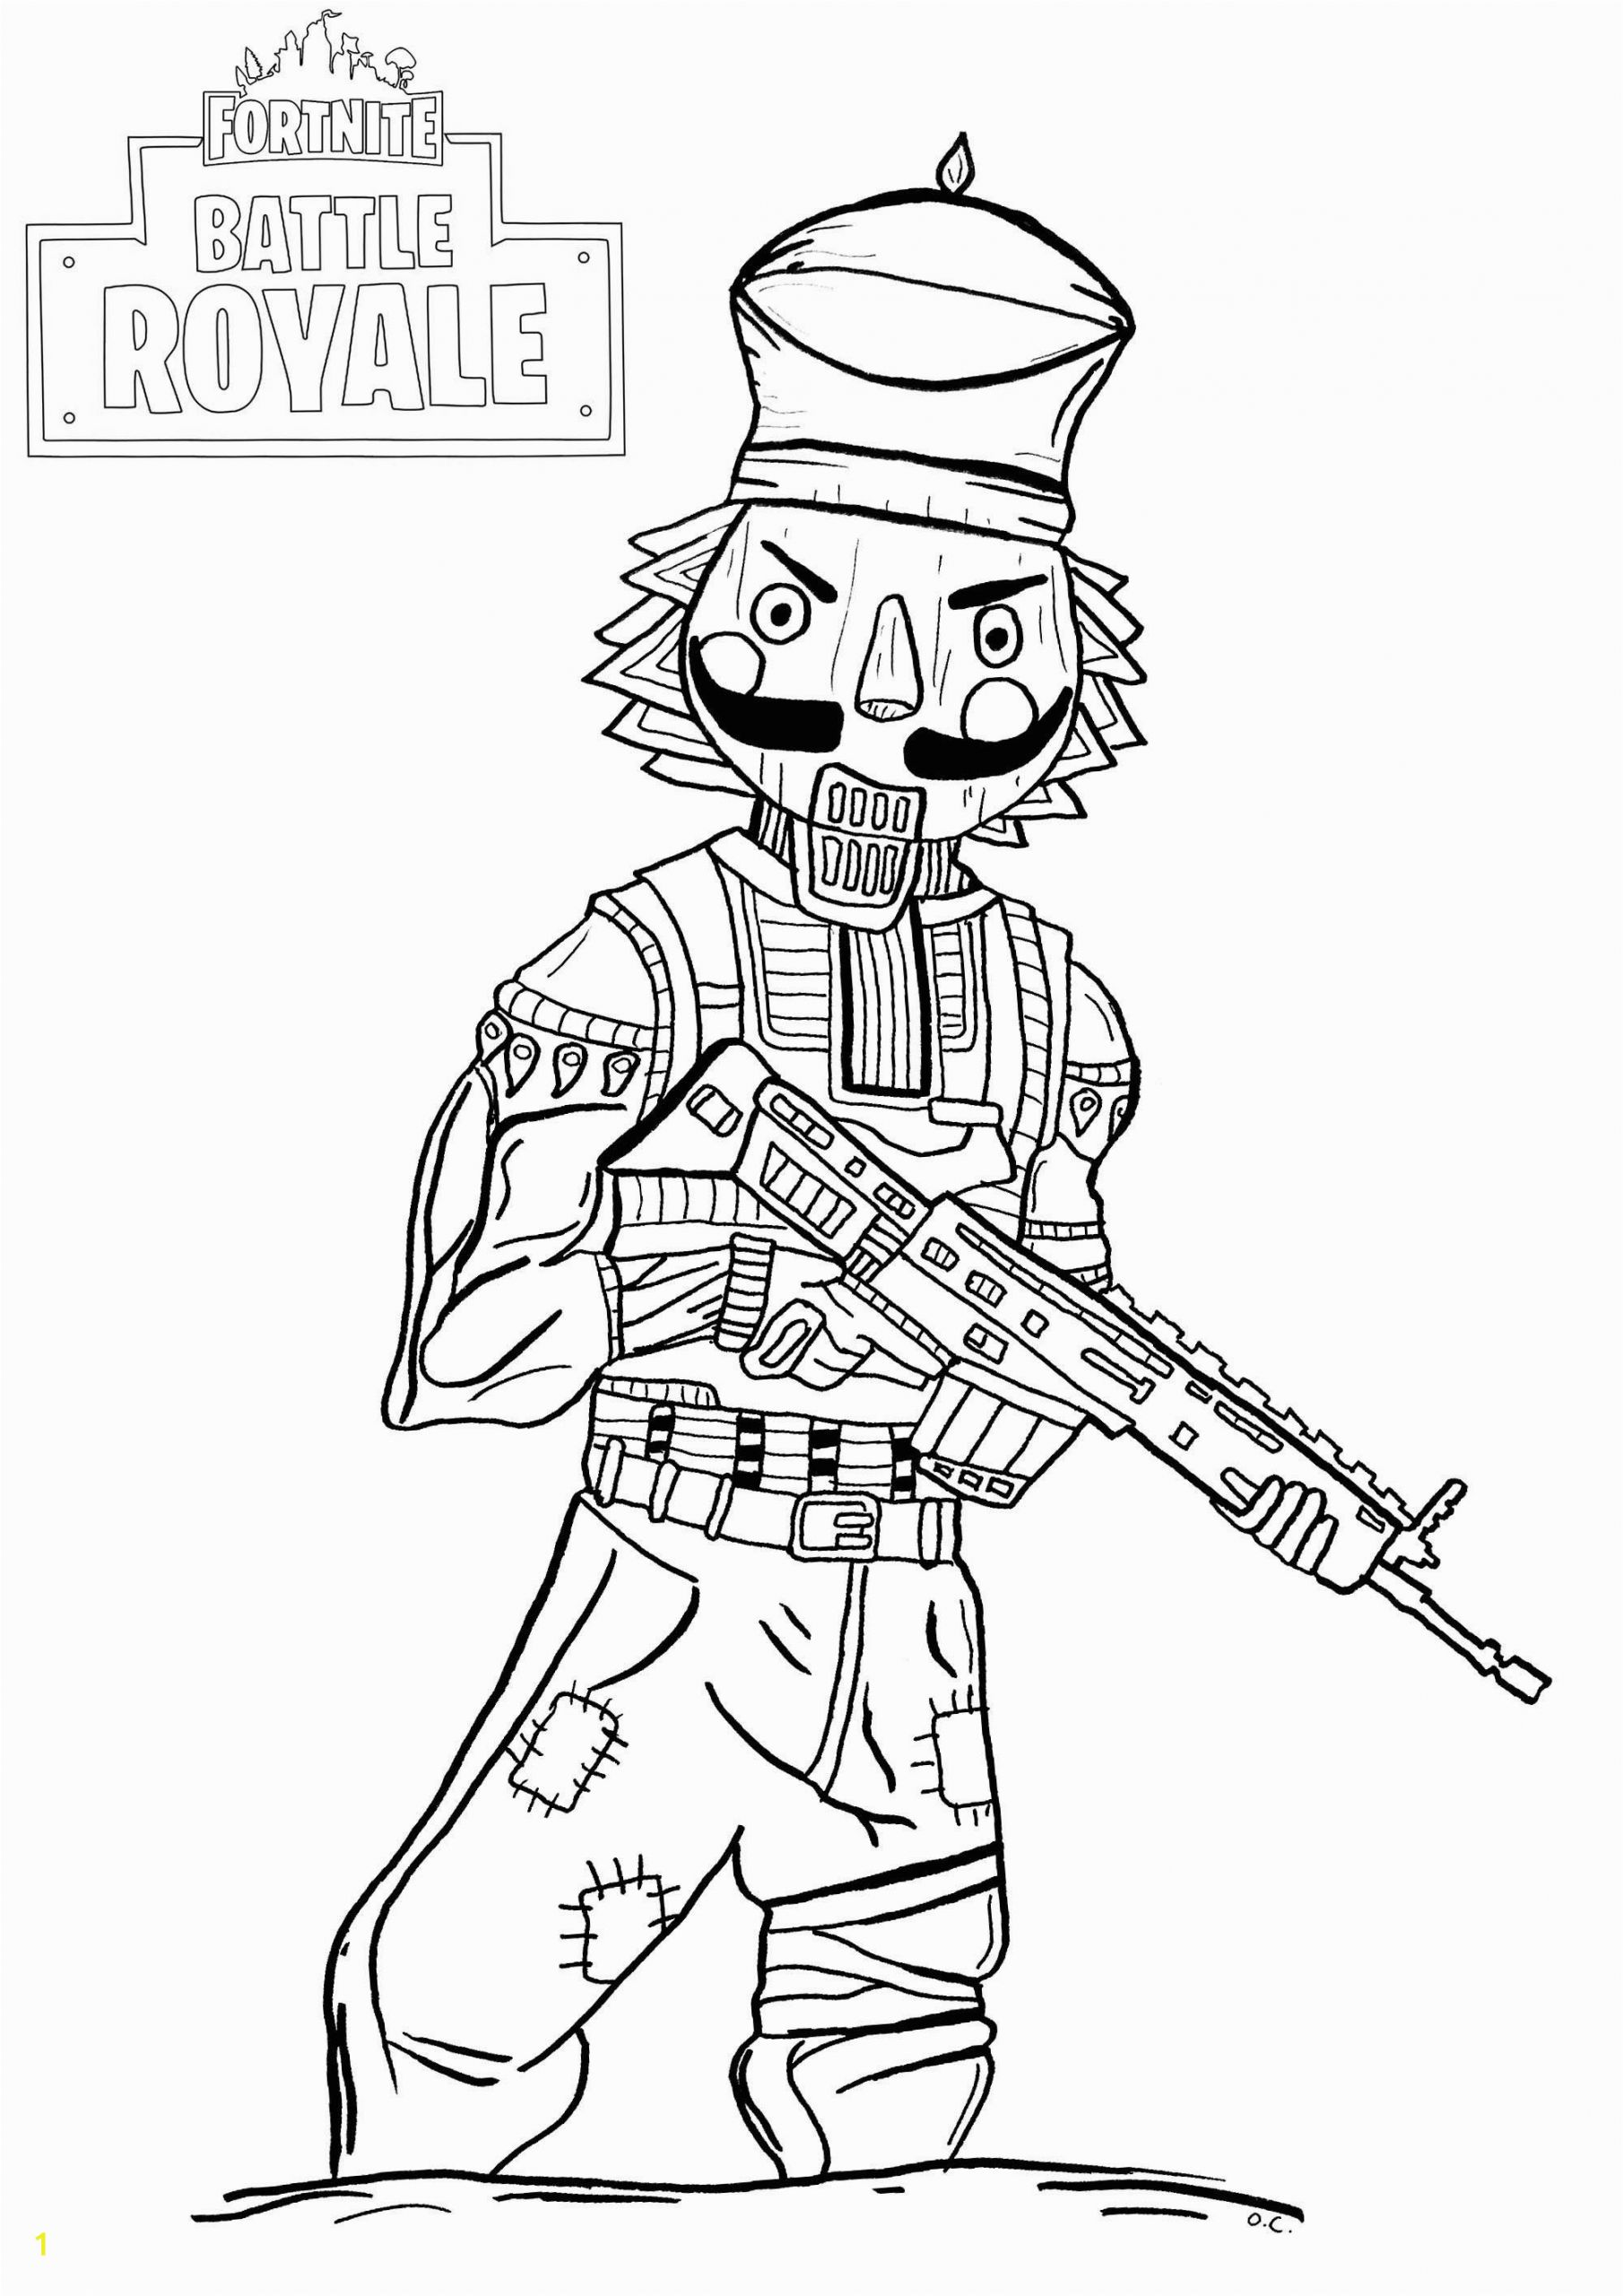 fortnite season 1 coloring pages fortnite battle royale coloring pages theme of fortnite 1 pages fortnite season coloring